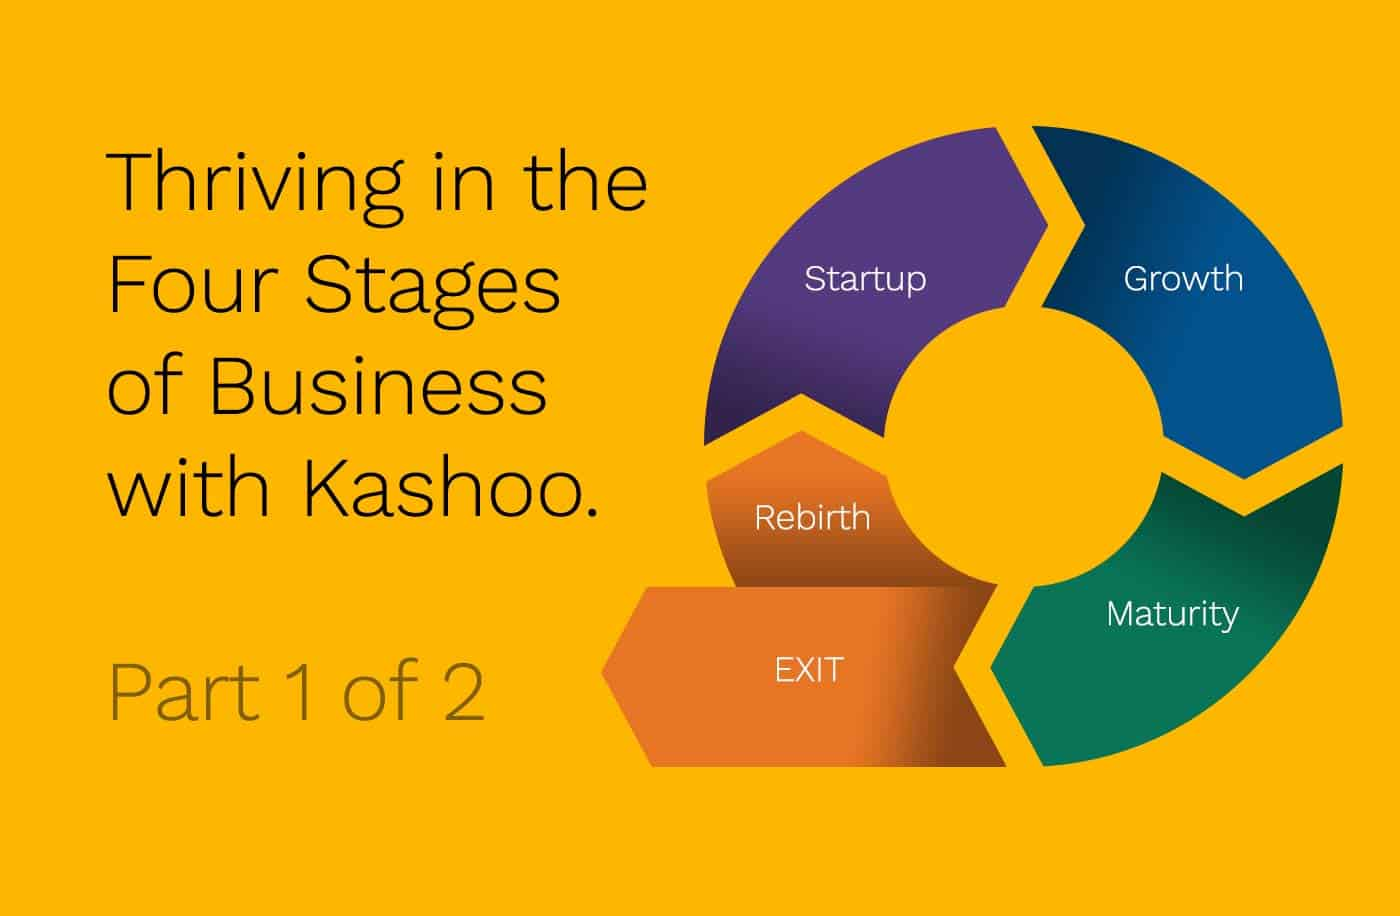 Our own CPA helps you through the Business Life Cycle with Kashoo.